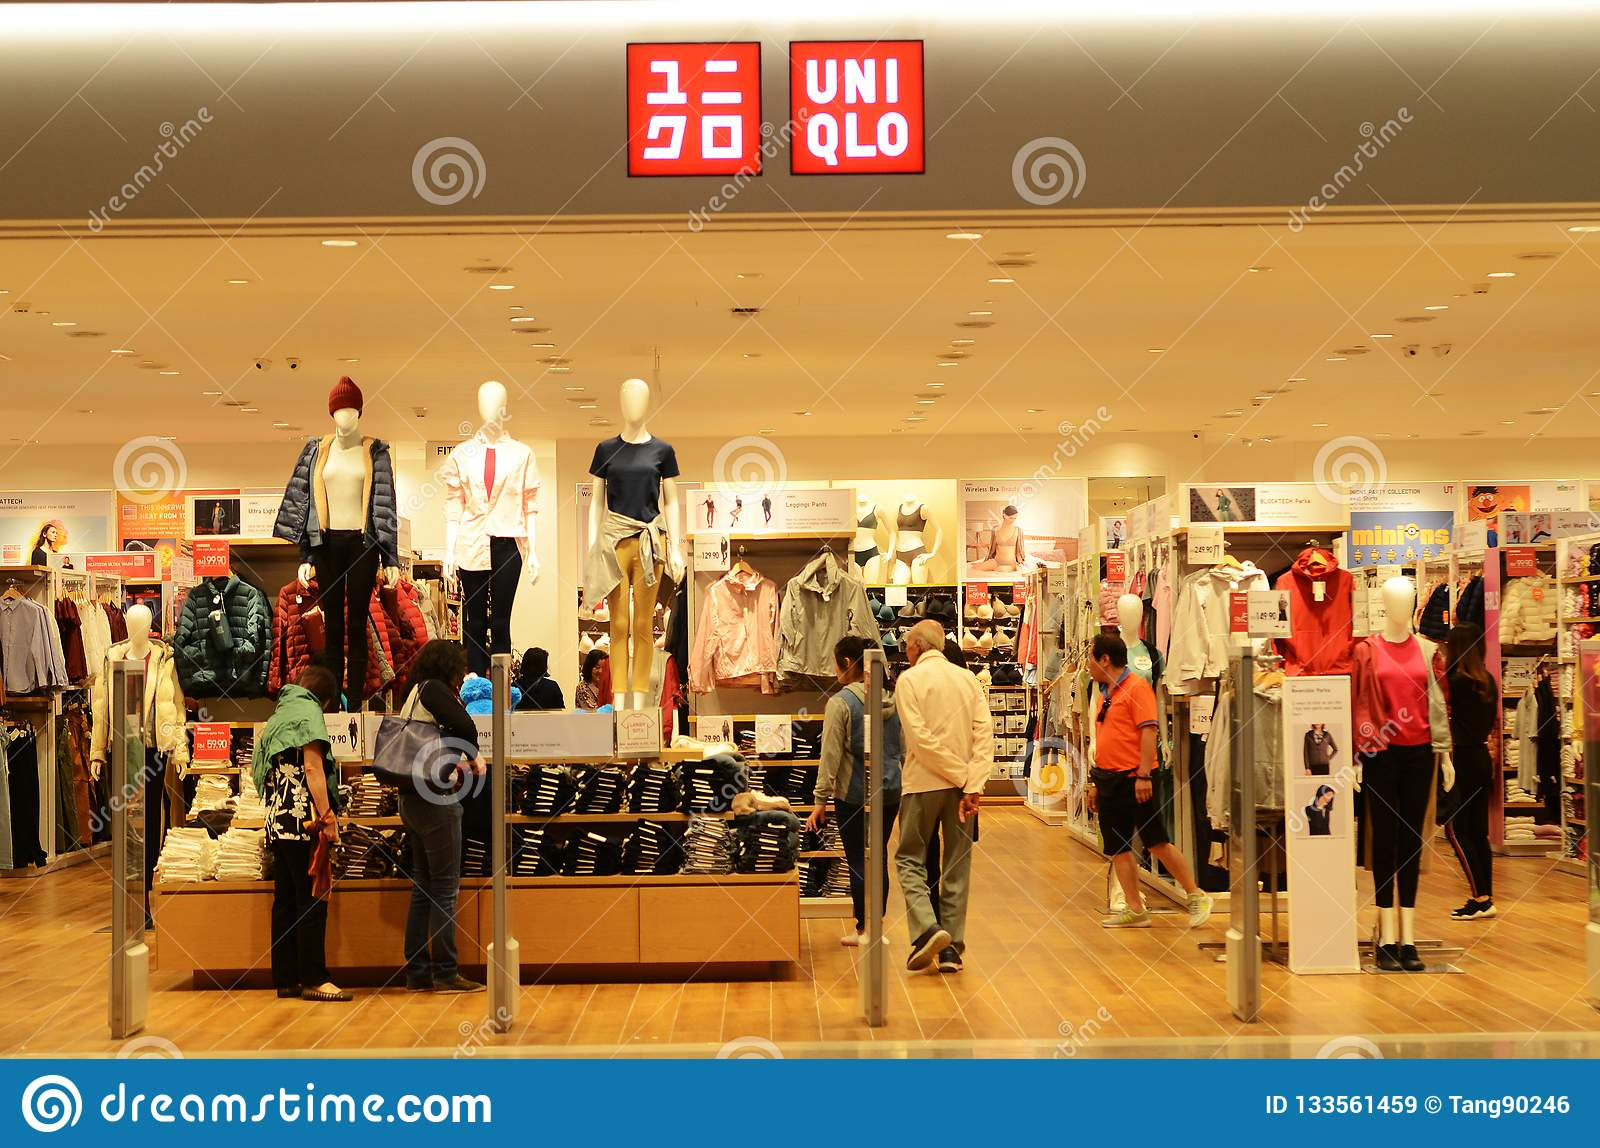 Interior Shot Of Uniqlo Store In Genting Highlands Malaysia